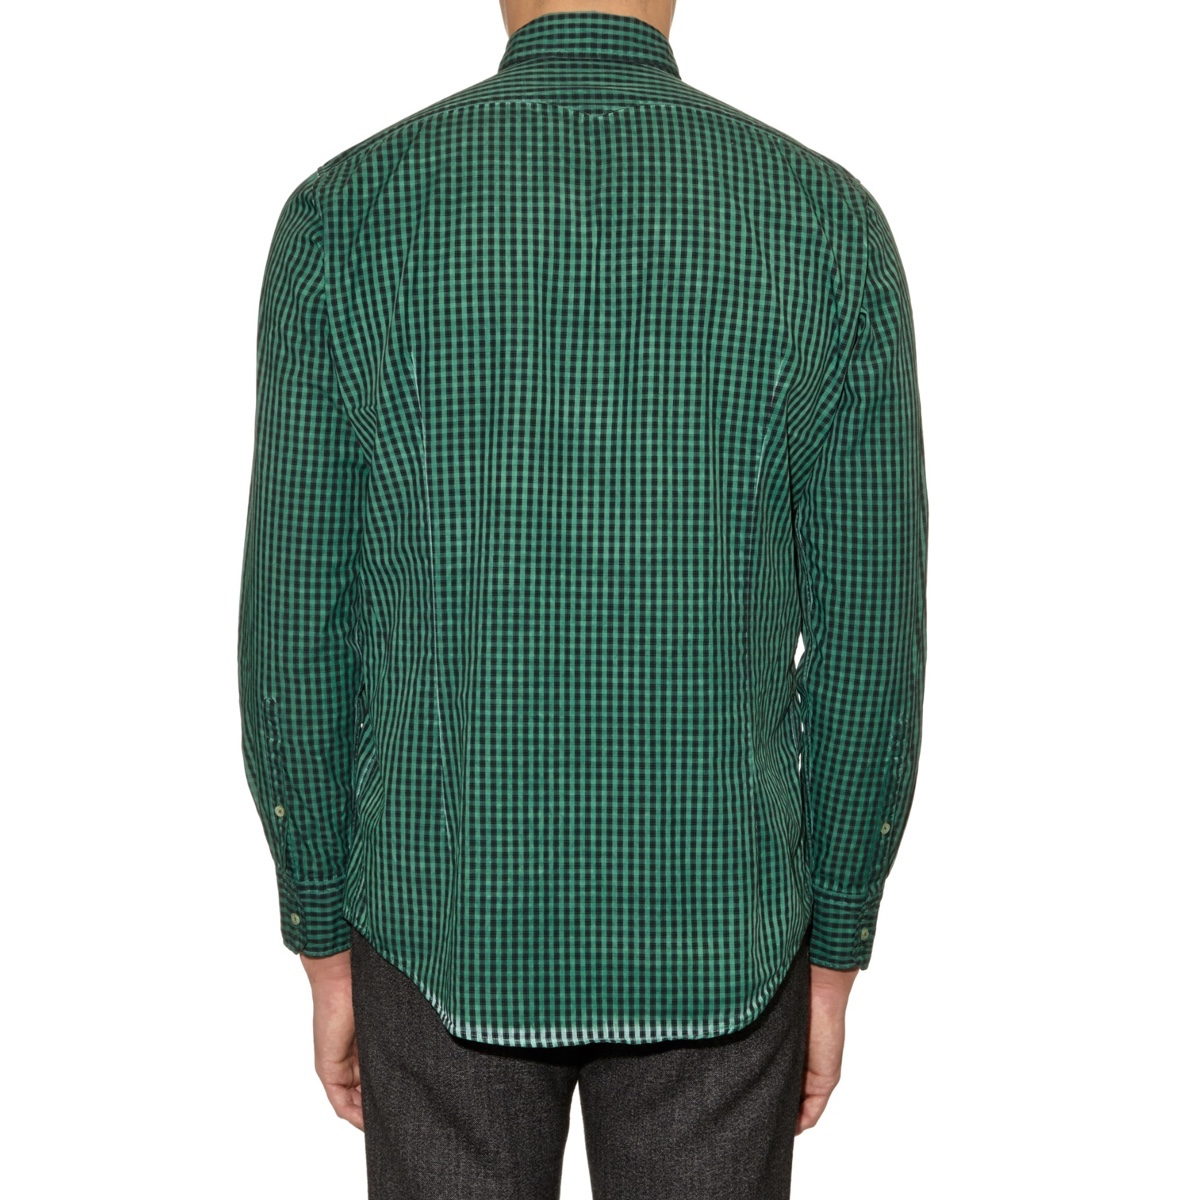 massimo-alba-green-multi-canary-checked-cotton-shirt-green-product-0-349861608-normal.jpg